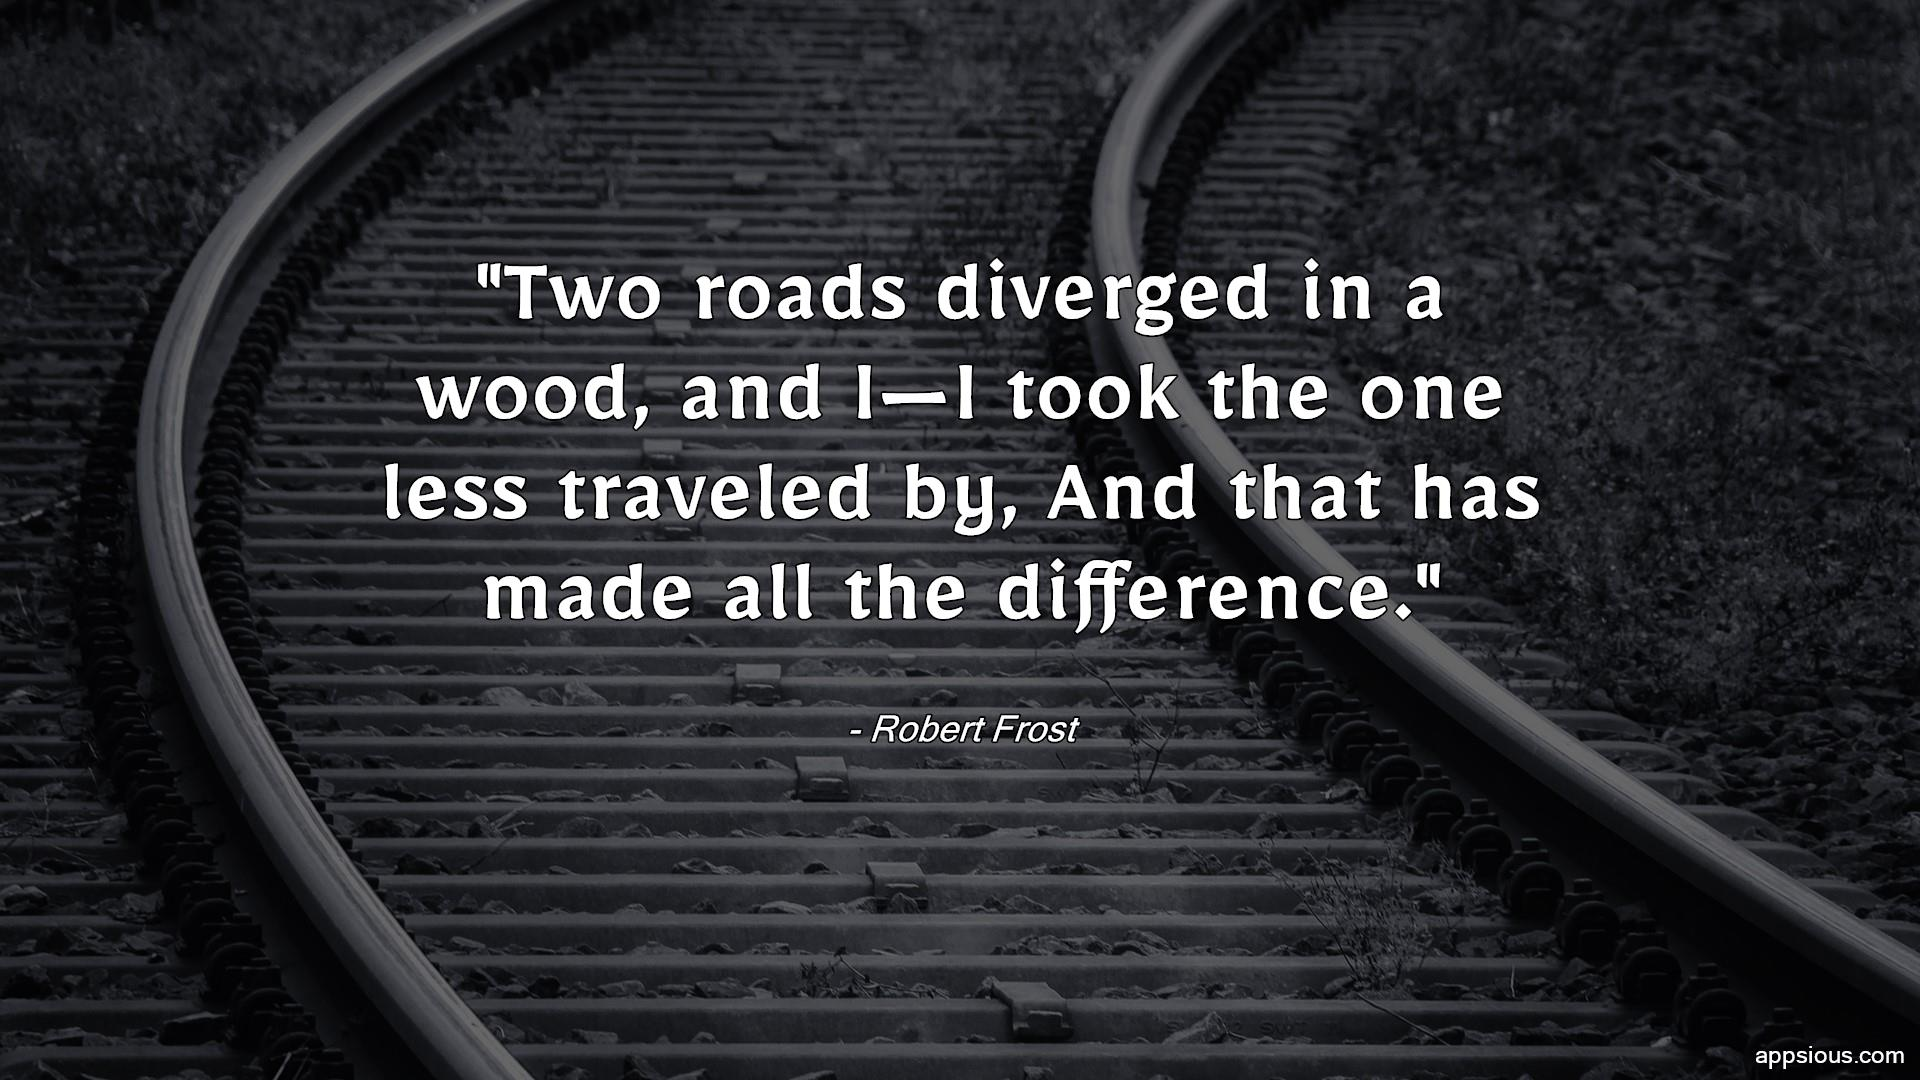 Two roads diverged in a wood, and I—I took the one less traveled by, And that has made all the difference.